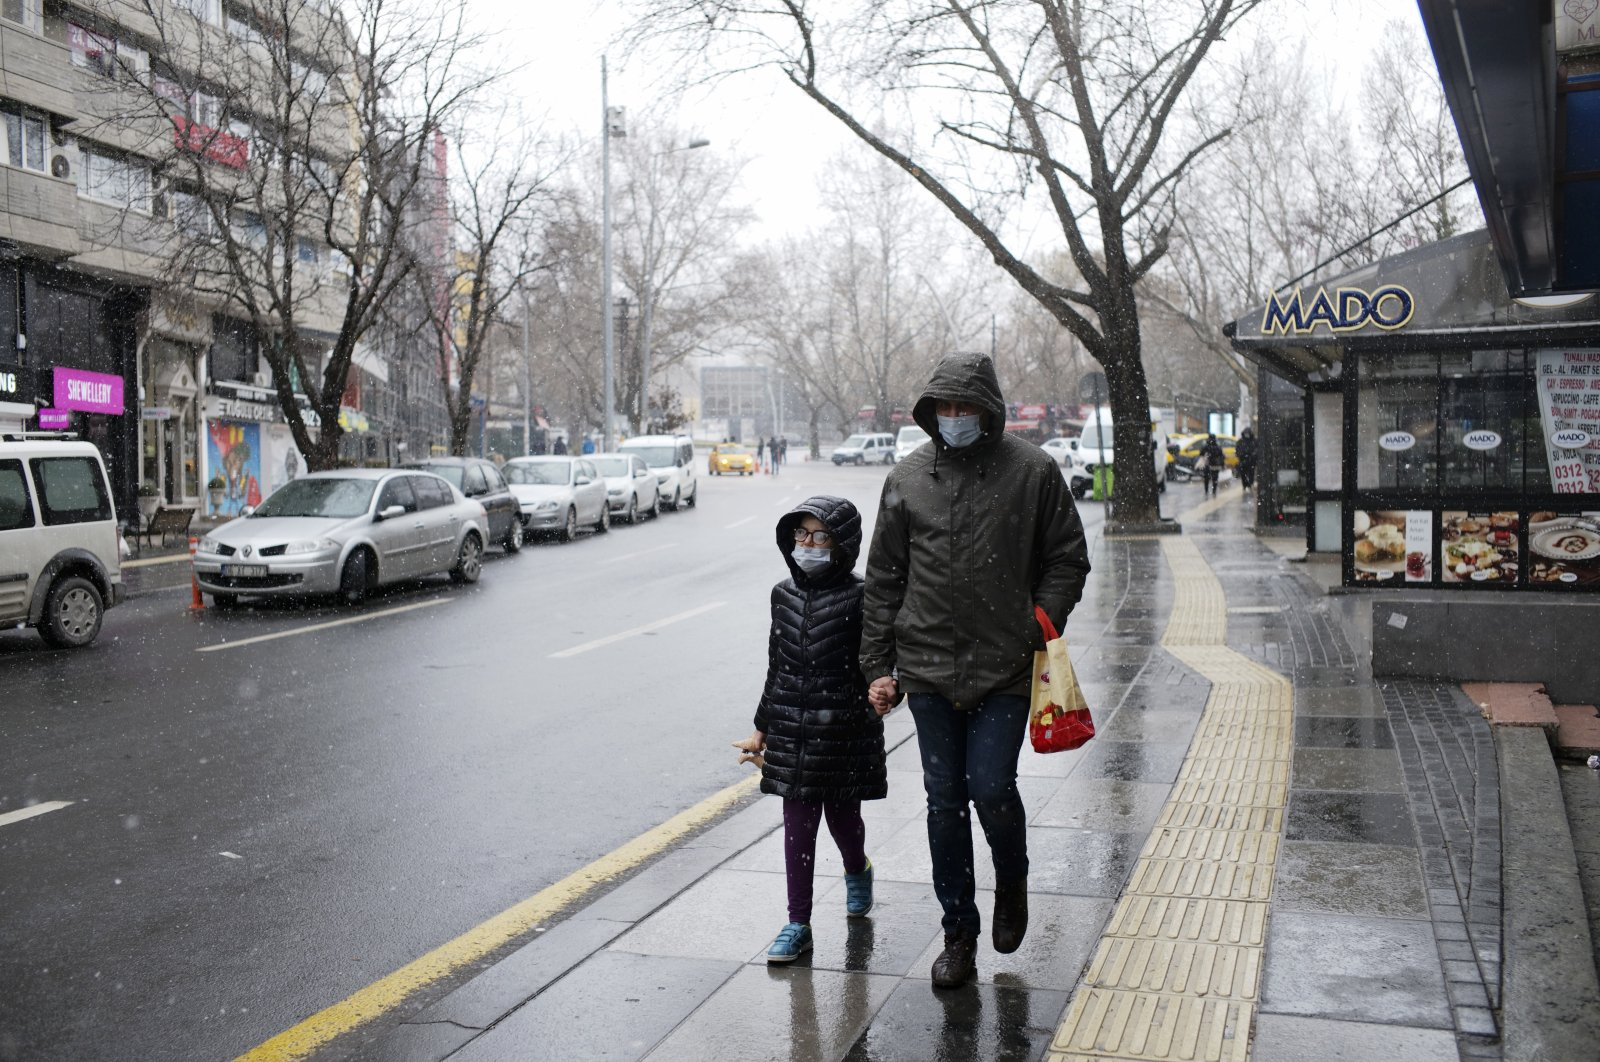 A man and a child wearing protective masks walk on a street in the capital Ankara, Turkey, Jan. 30, 2021. (AP PHOTO)